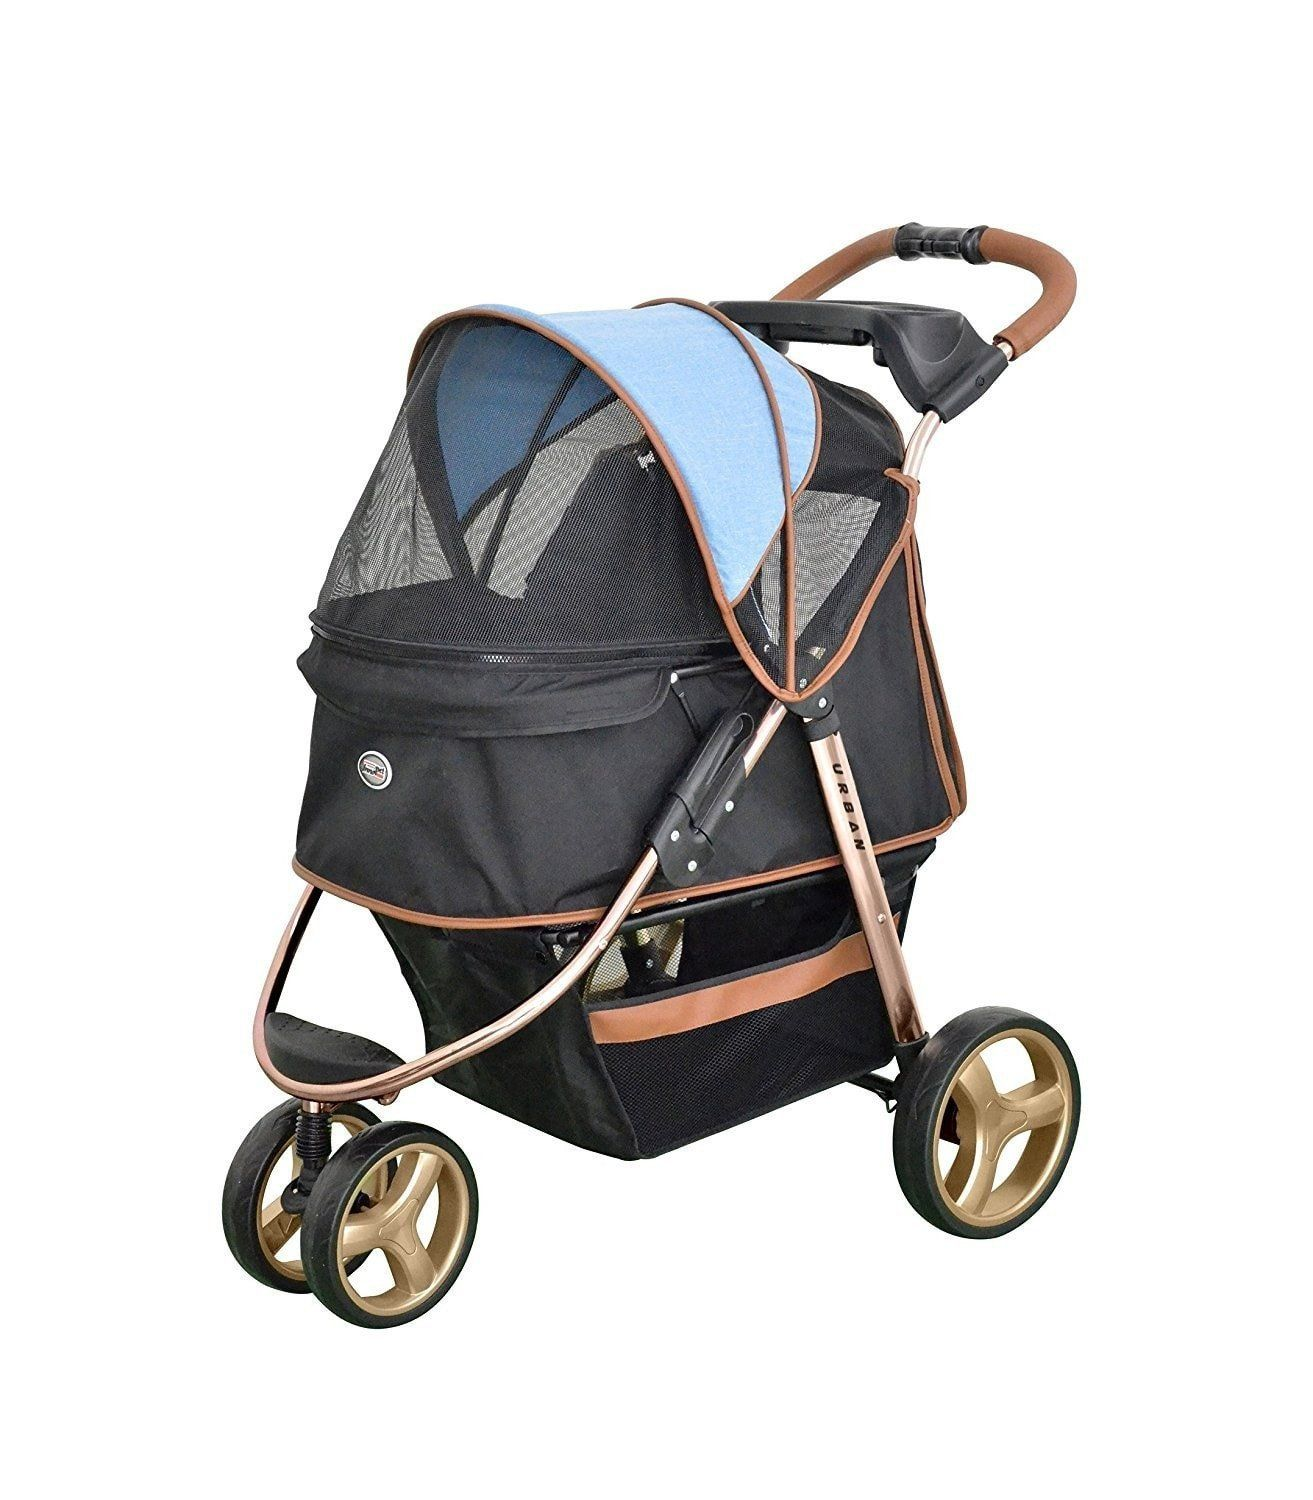 Urban Gold Luxury Buggy Pet Stroller by Innopet (With